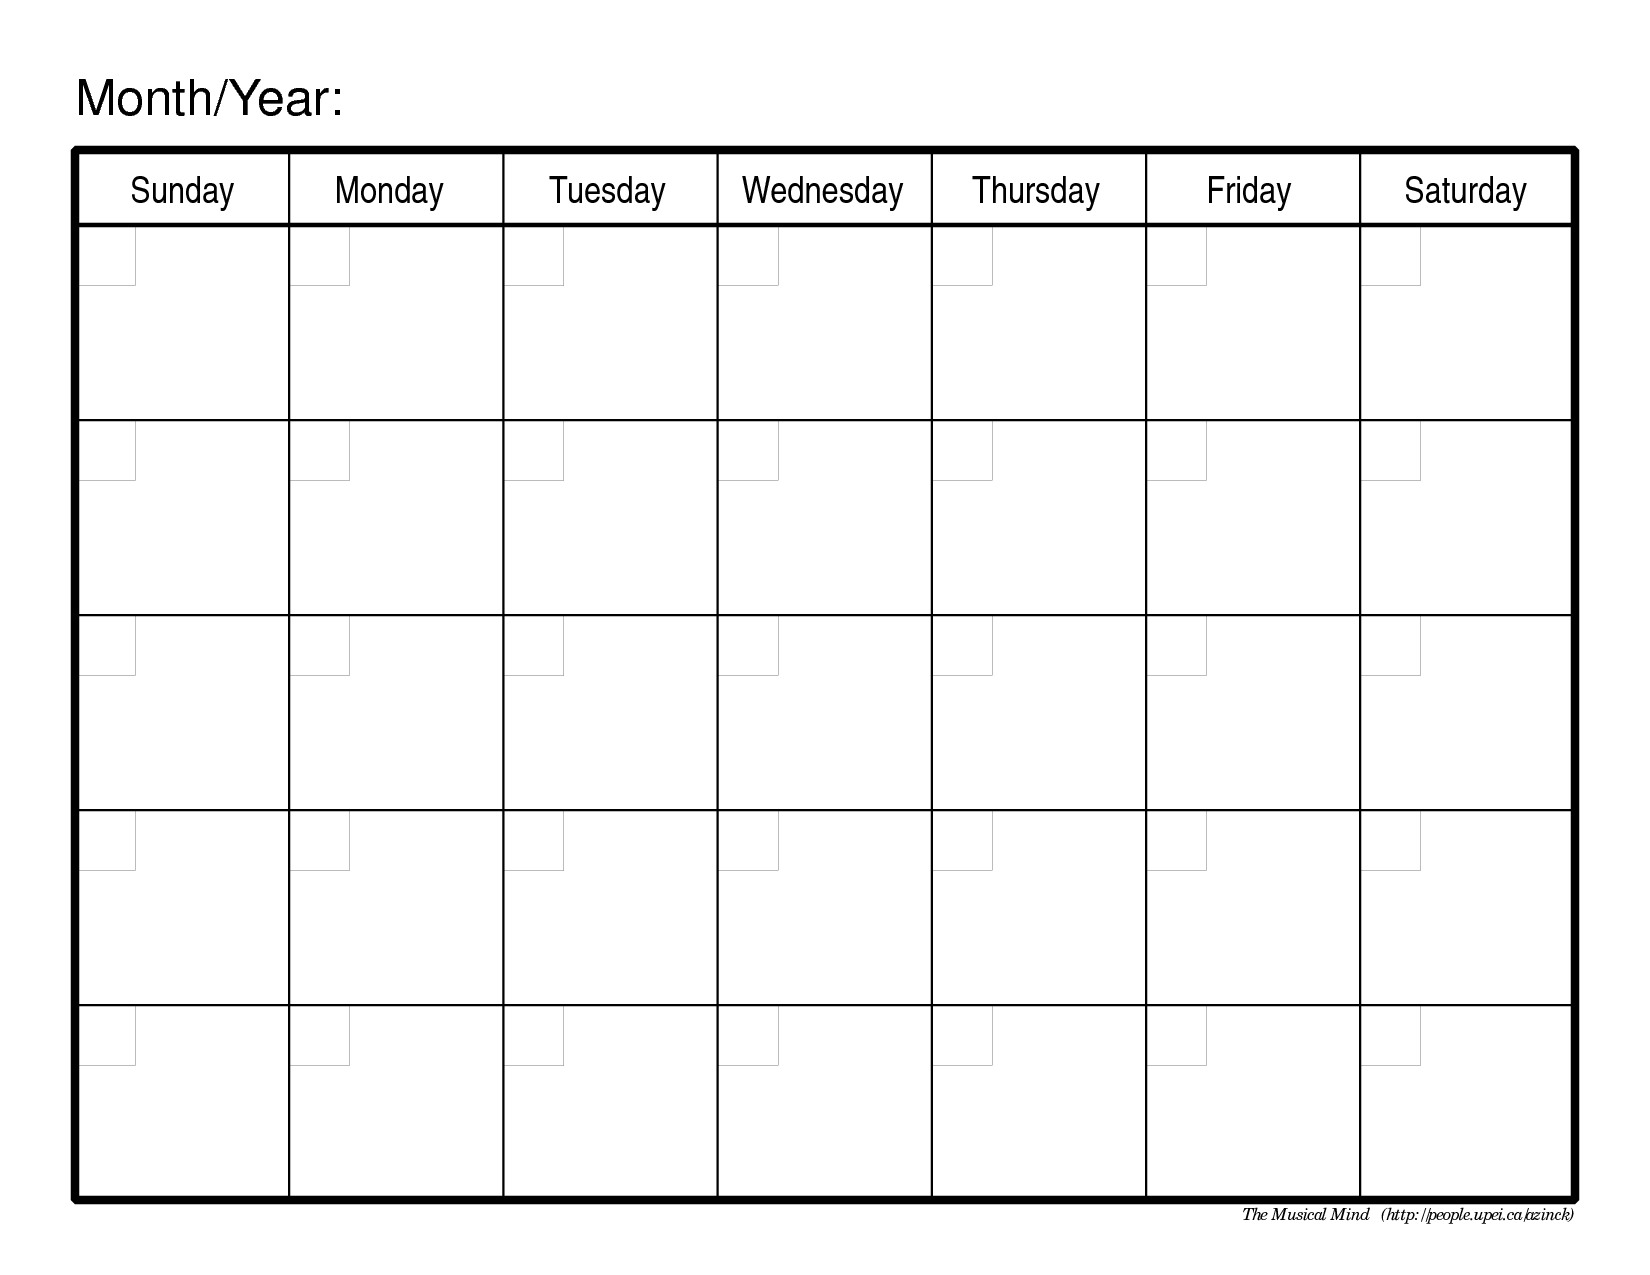 Monthly Calendar Template | Organizing | Pinterest